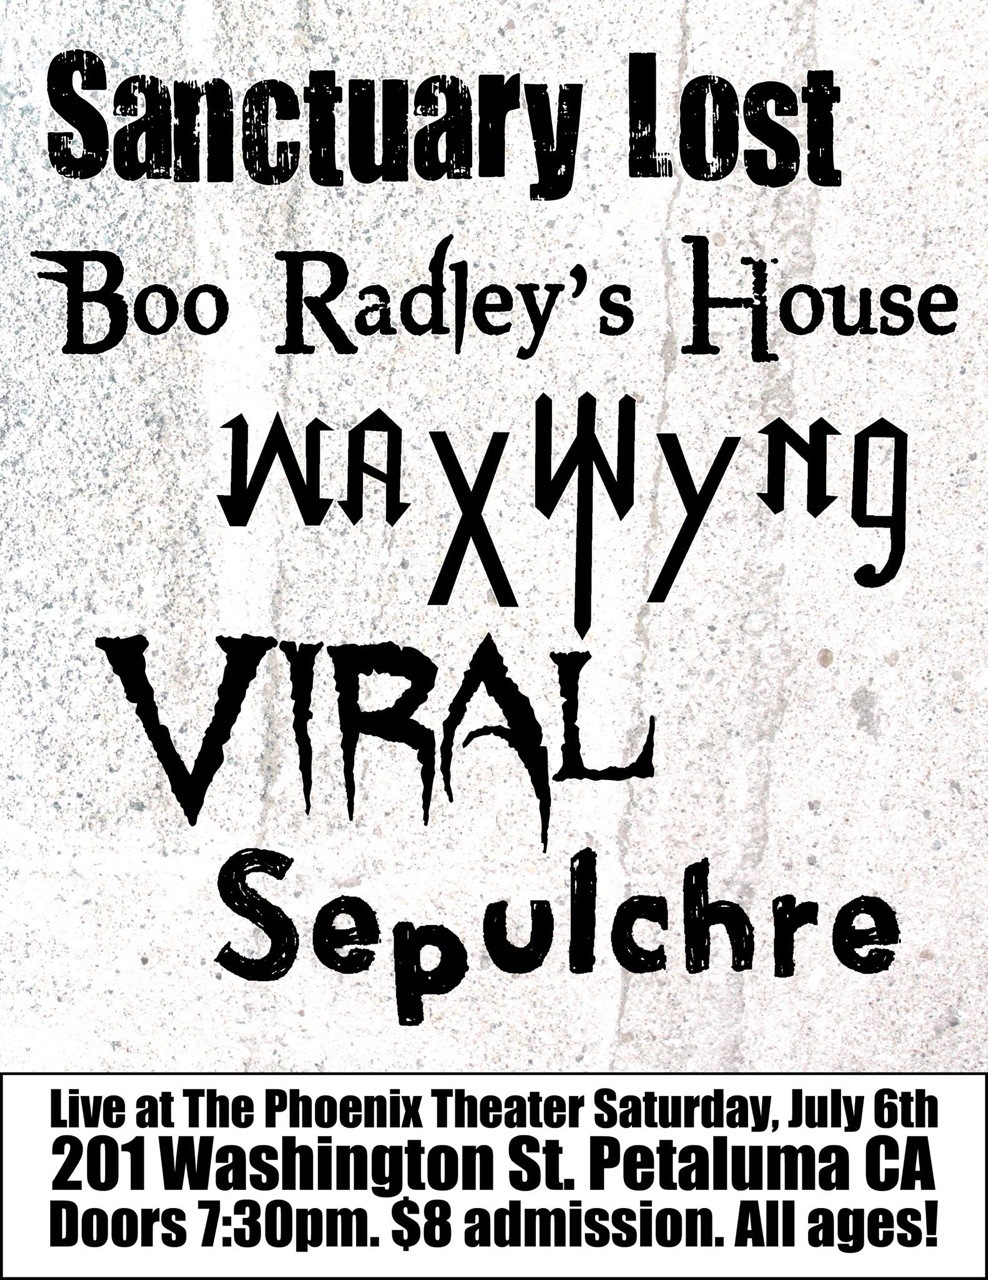 988x1280 Sanctuary Lost, Boo Radley's House Tickets The Phoenix Theater